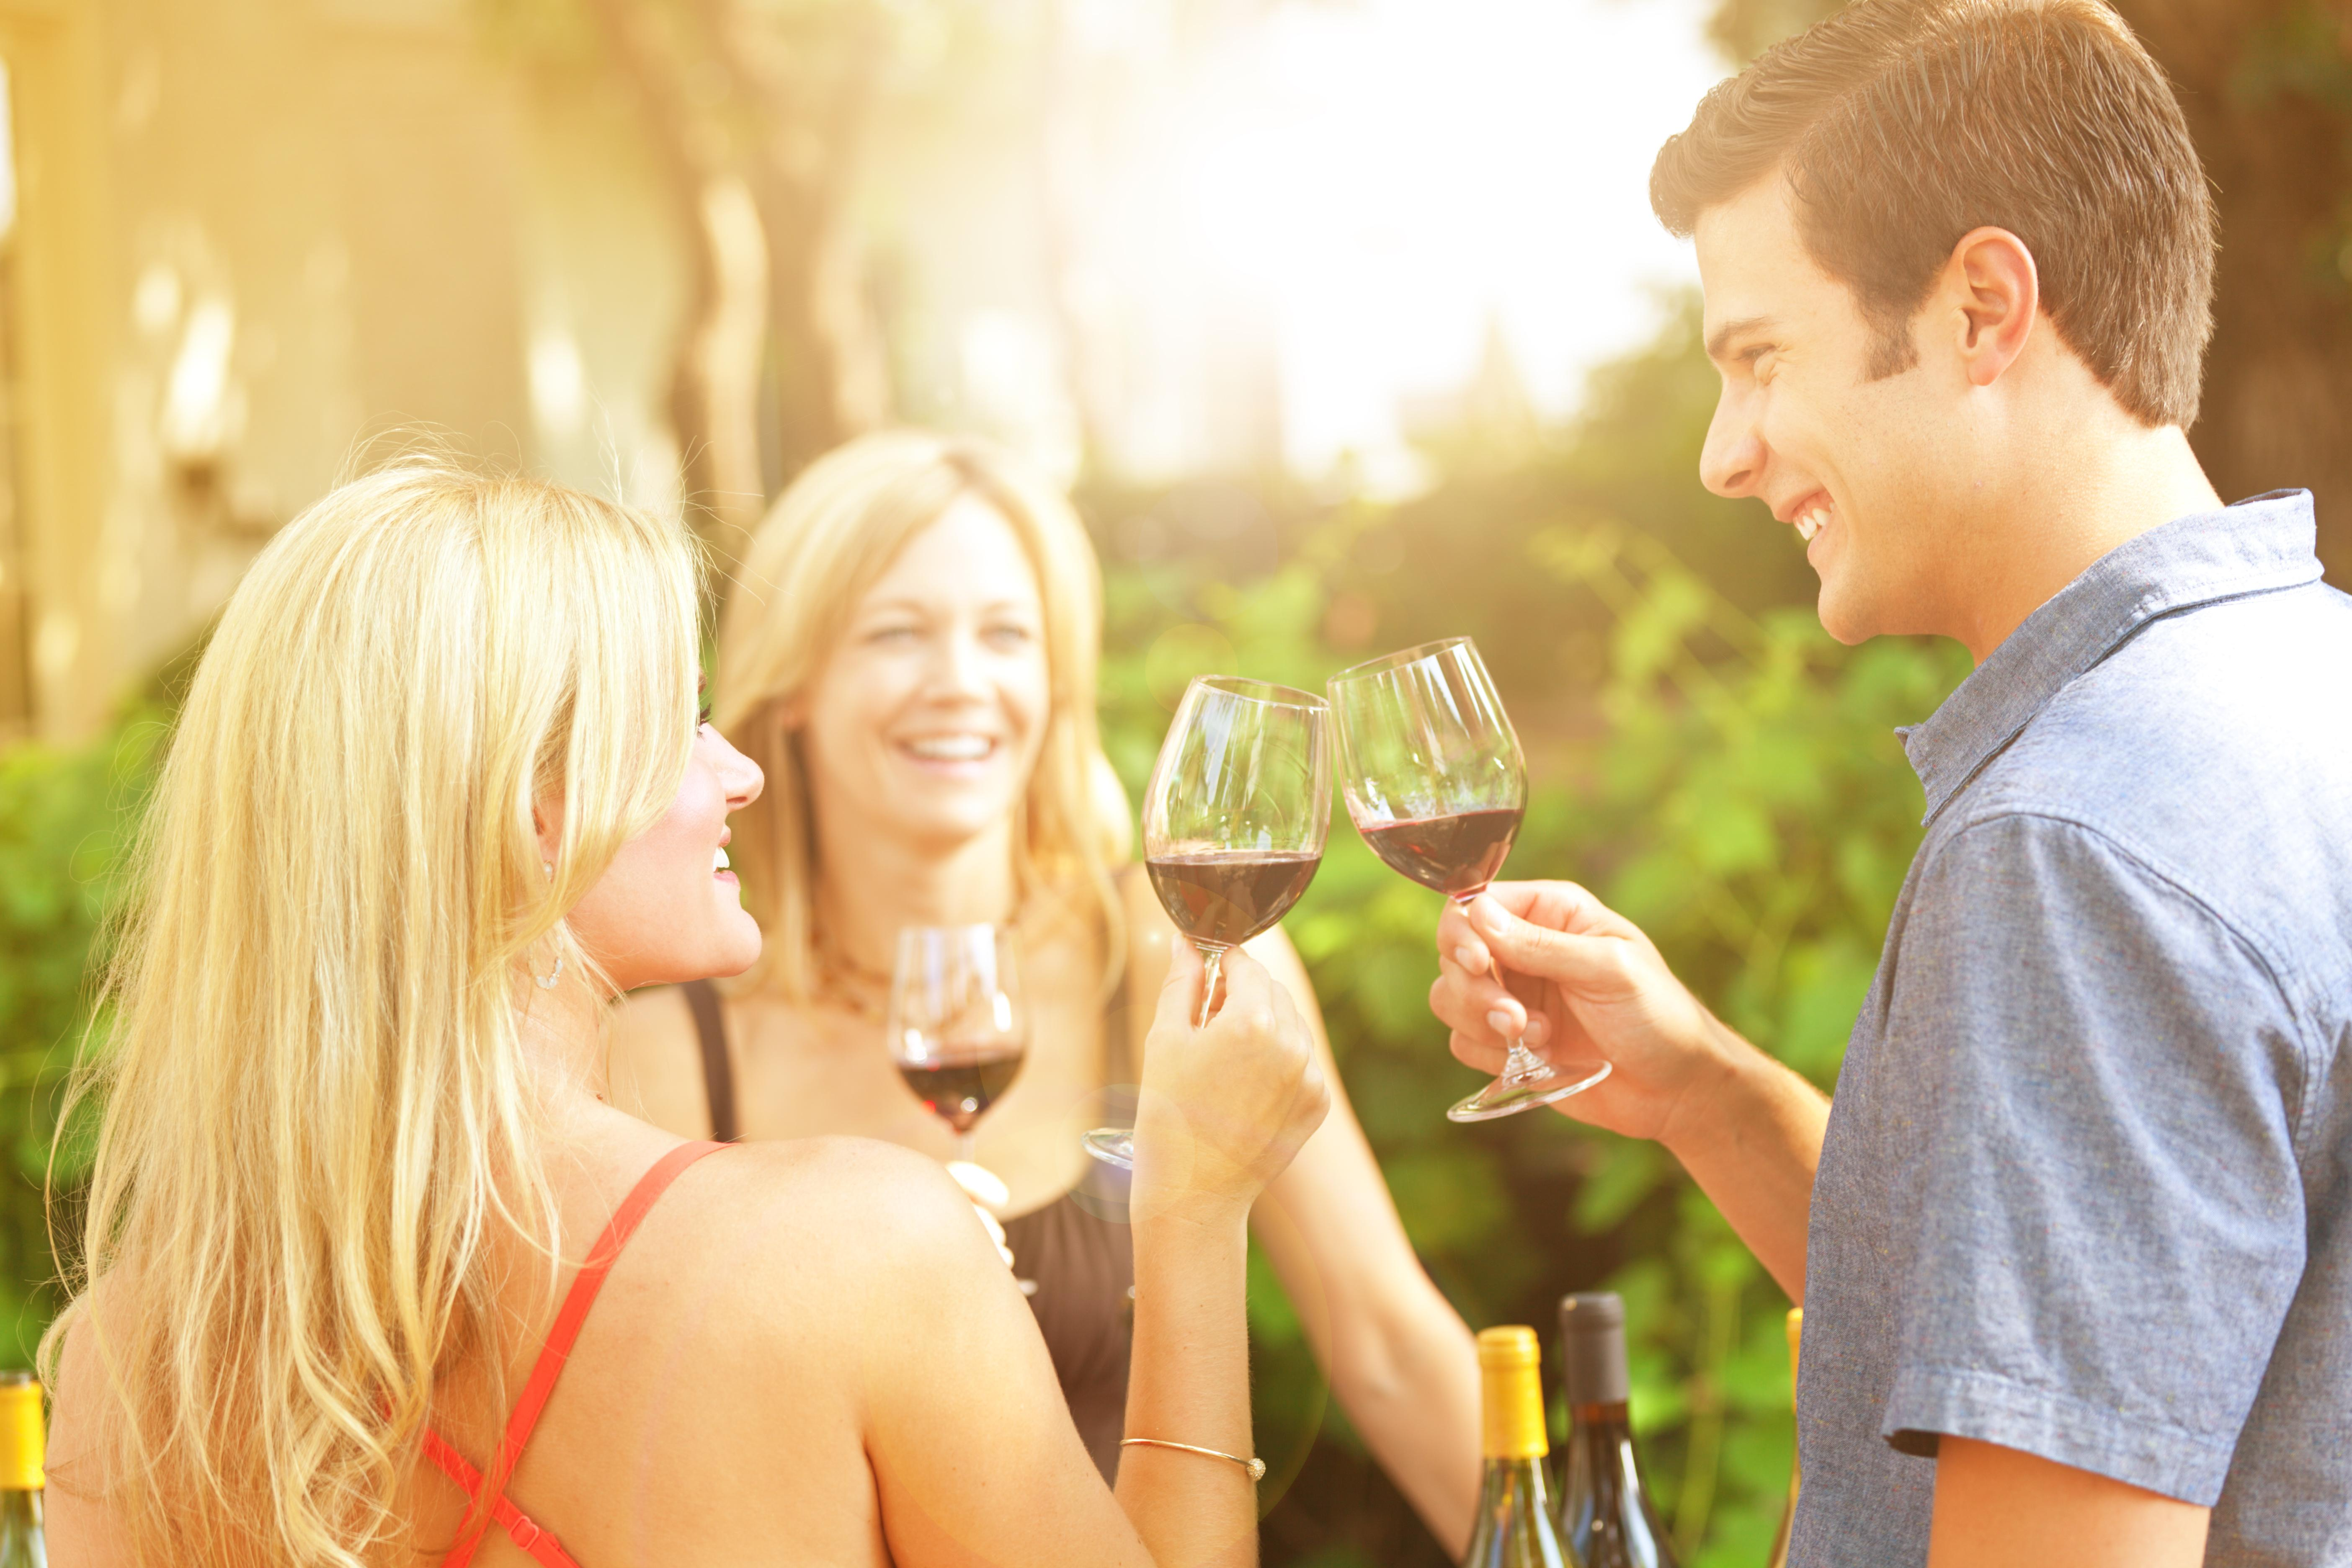 Don't miss the Renton Wine Walk on Friday, June 7, 2019, from 6 p.m. to 9 p.m.{&nbsp;}Tickets for the Renton Wine Walk are $25 in advance and $30 at the event (if not sold out). <p></p>